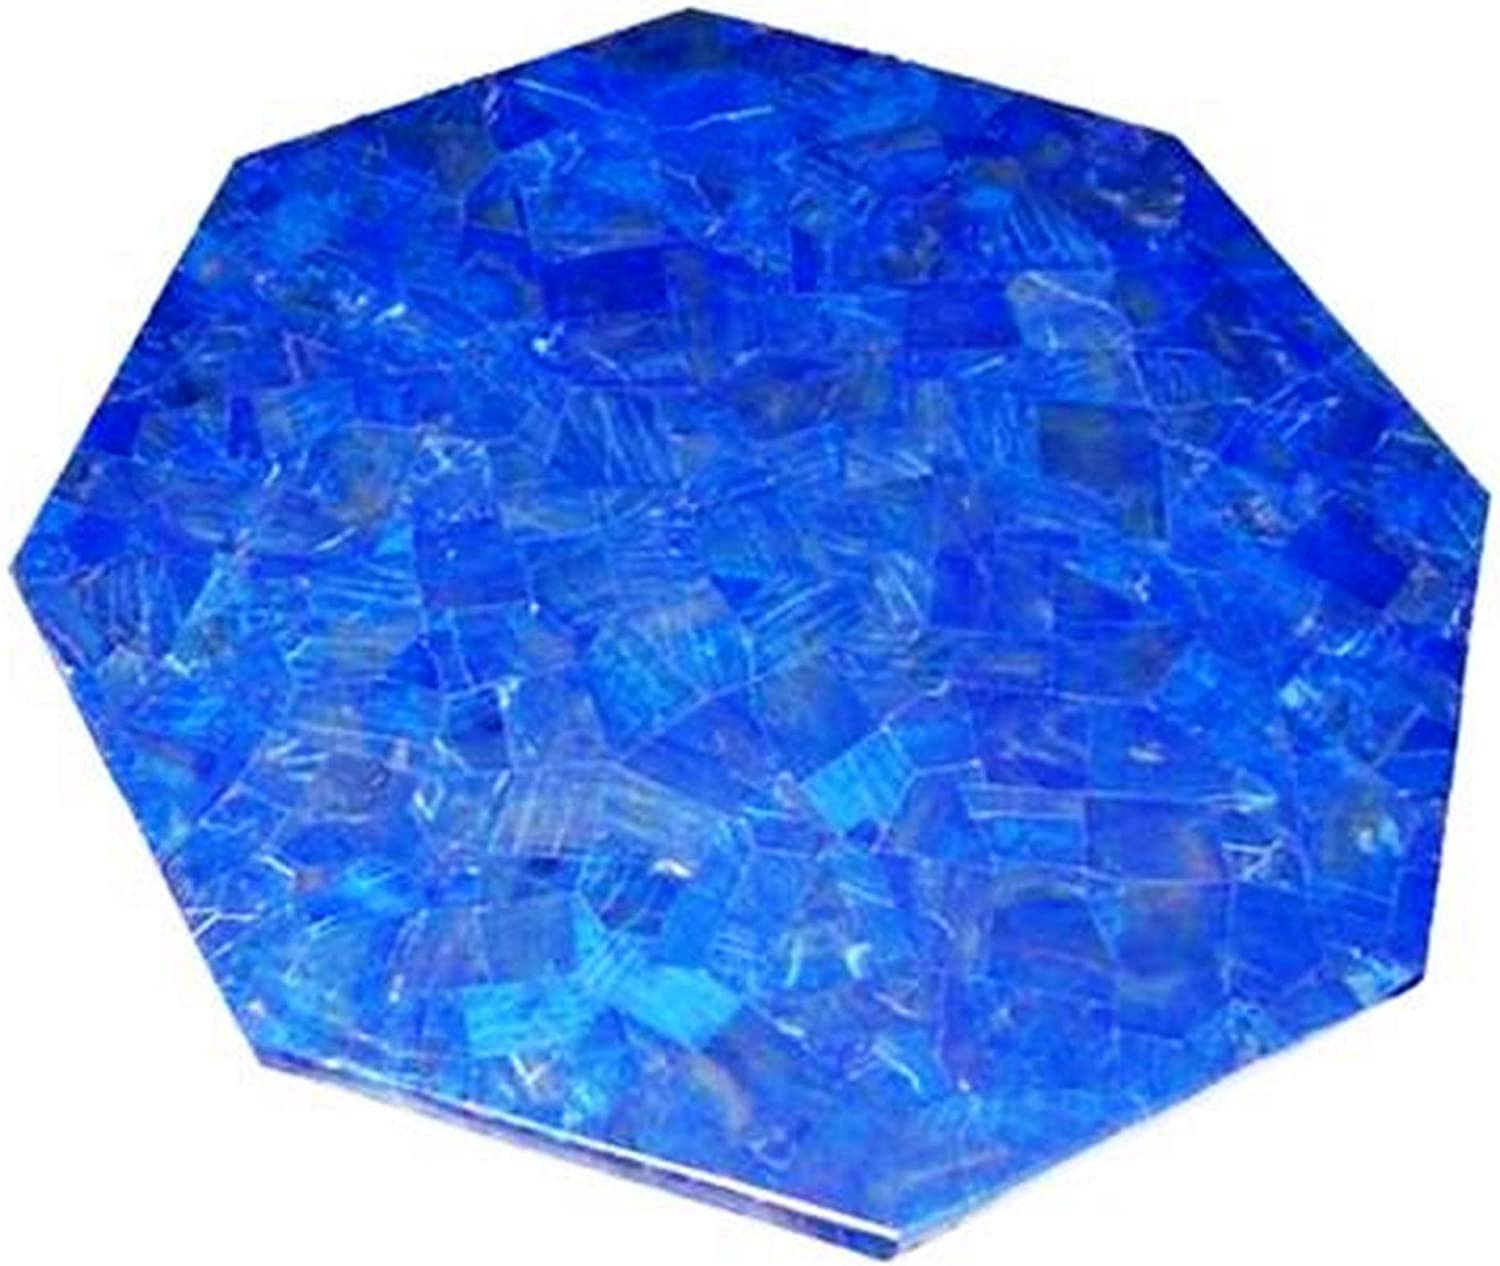 15 Inches Blue Marble Patio Side Table,Coffee Table Top Mosaic Art Lapis Lazuli with Random Work